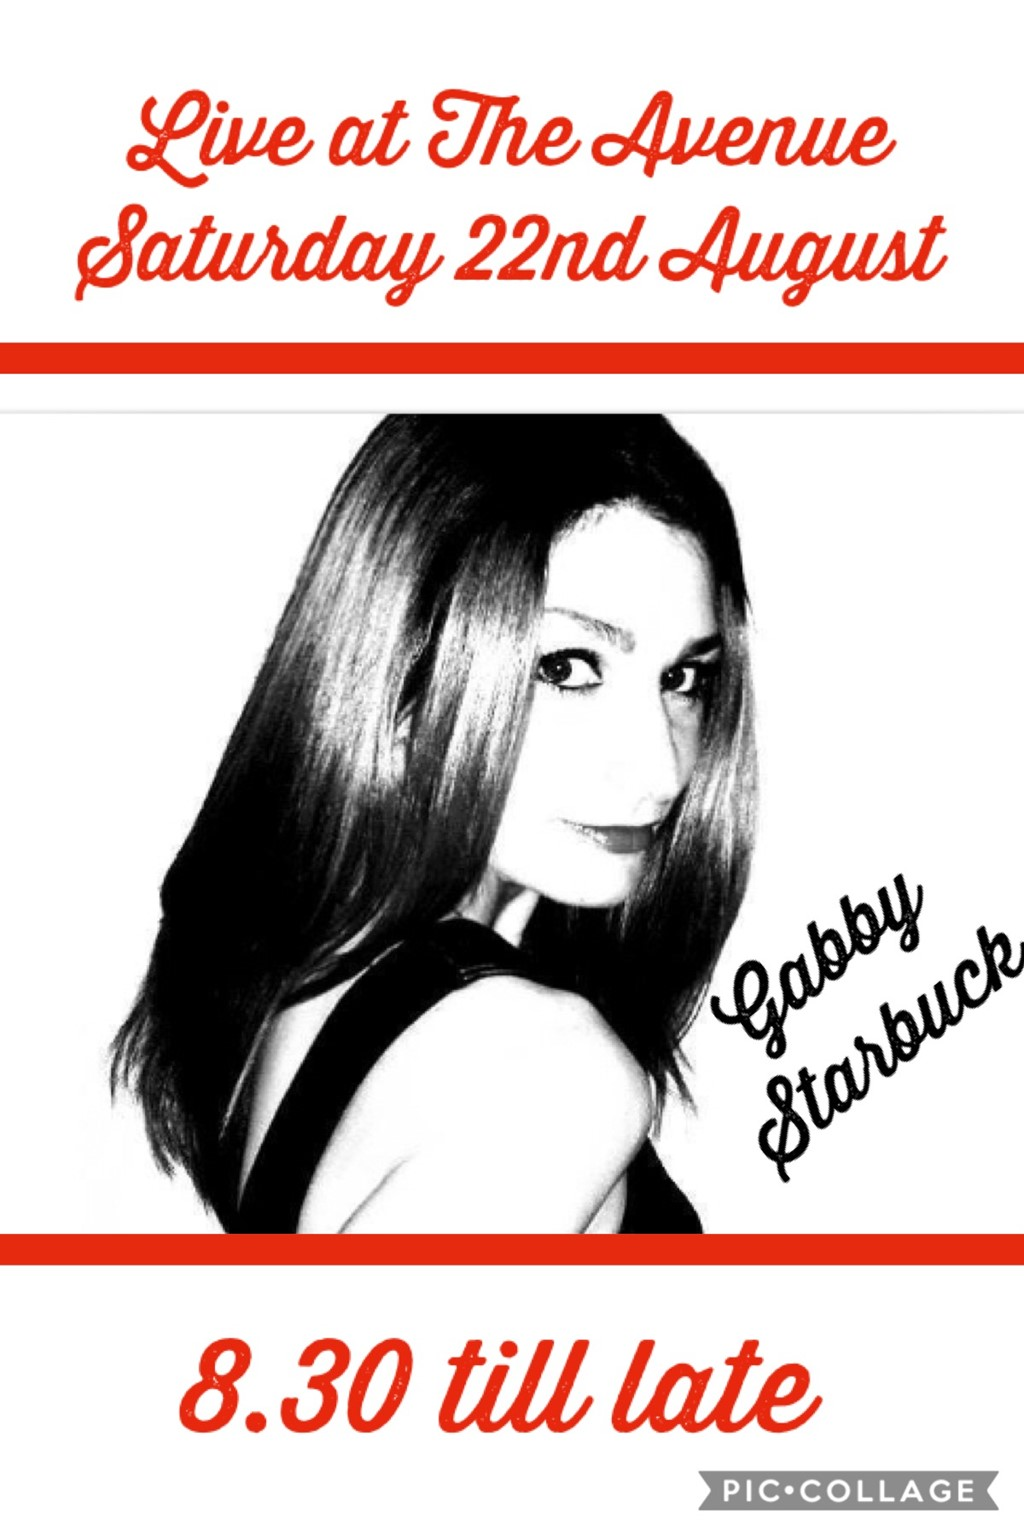 Live Music with Gabby Starbuck